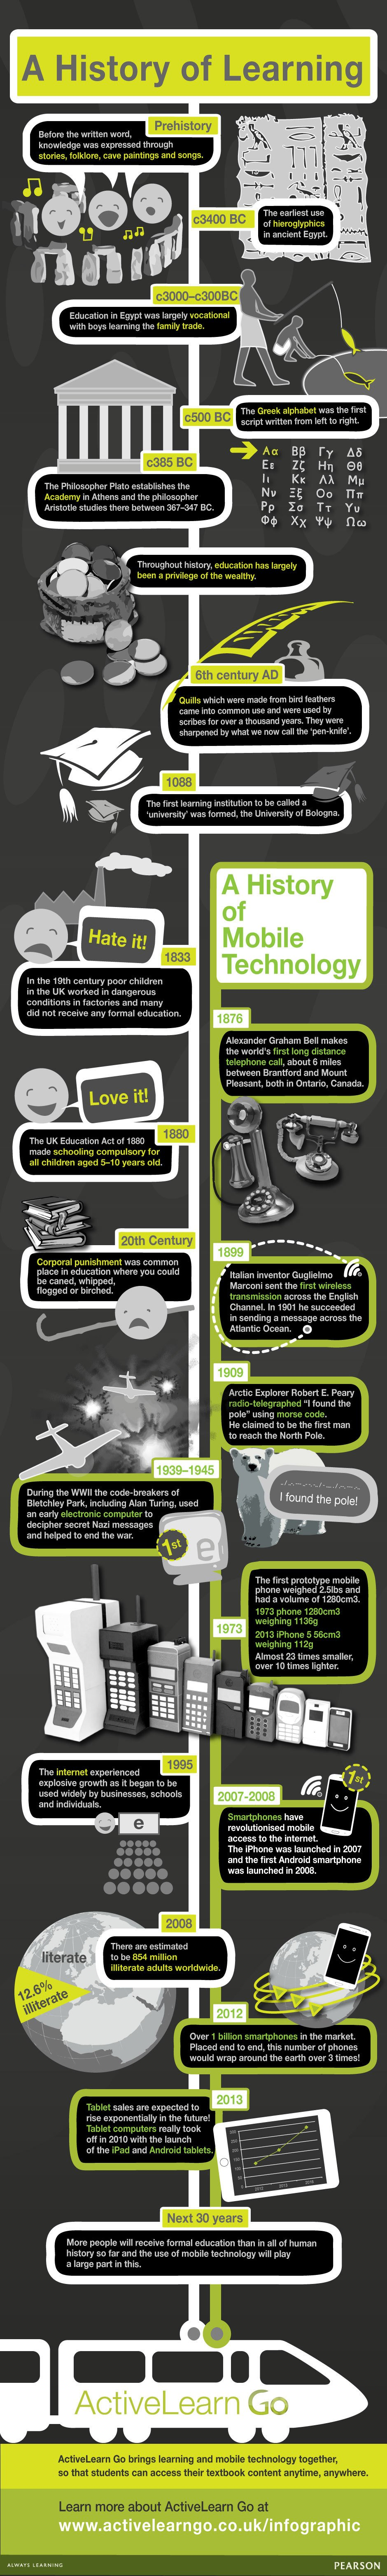 A History of Learning and Mobile Technology Infographic